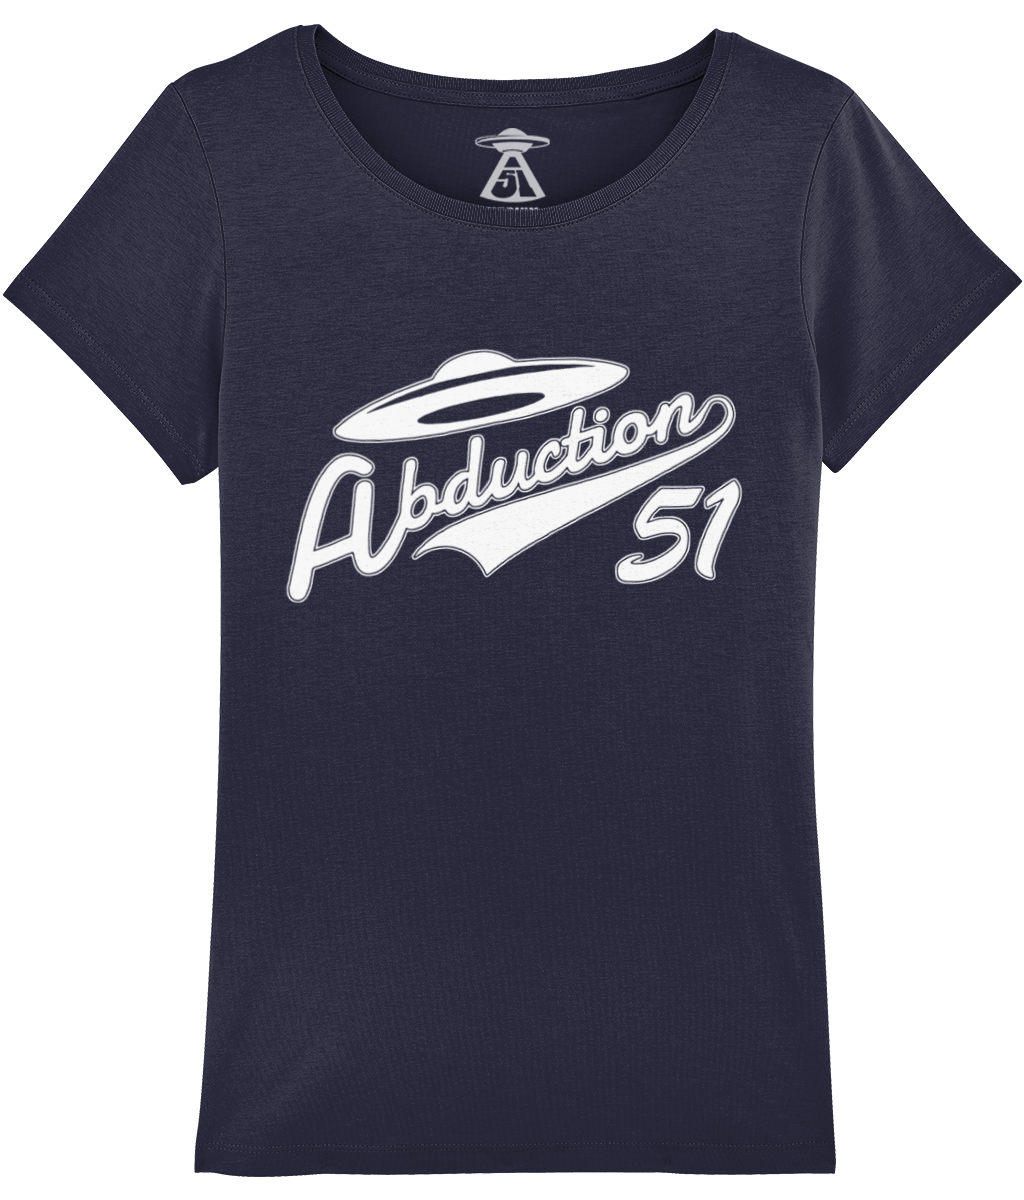 Home Run - T-Shirt For Women - Abduction 51 Extraterrestrial Streetwear | UFO & Alien Inspired